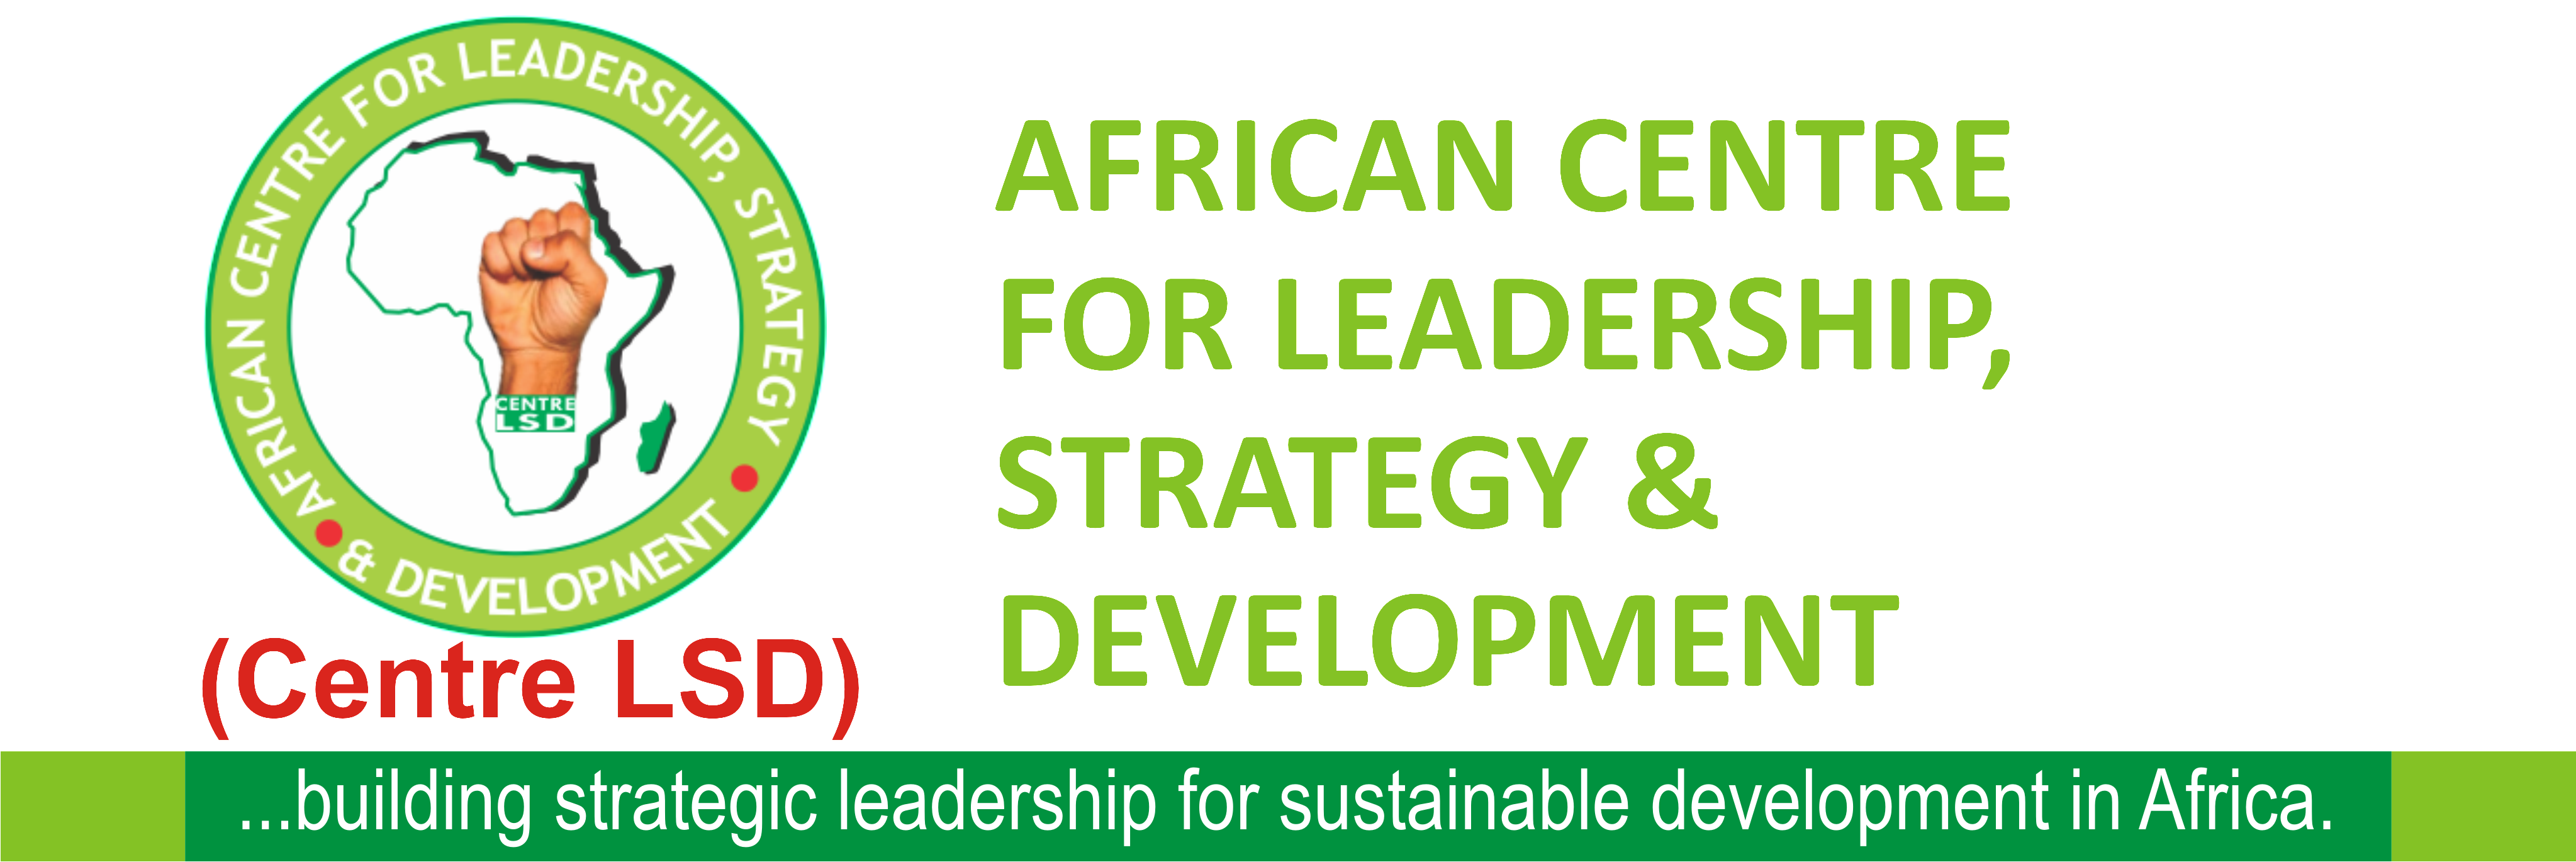 African Centre for Leadership, Strategy & Development